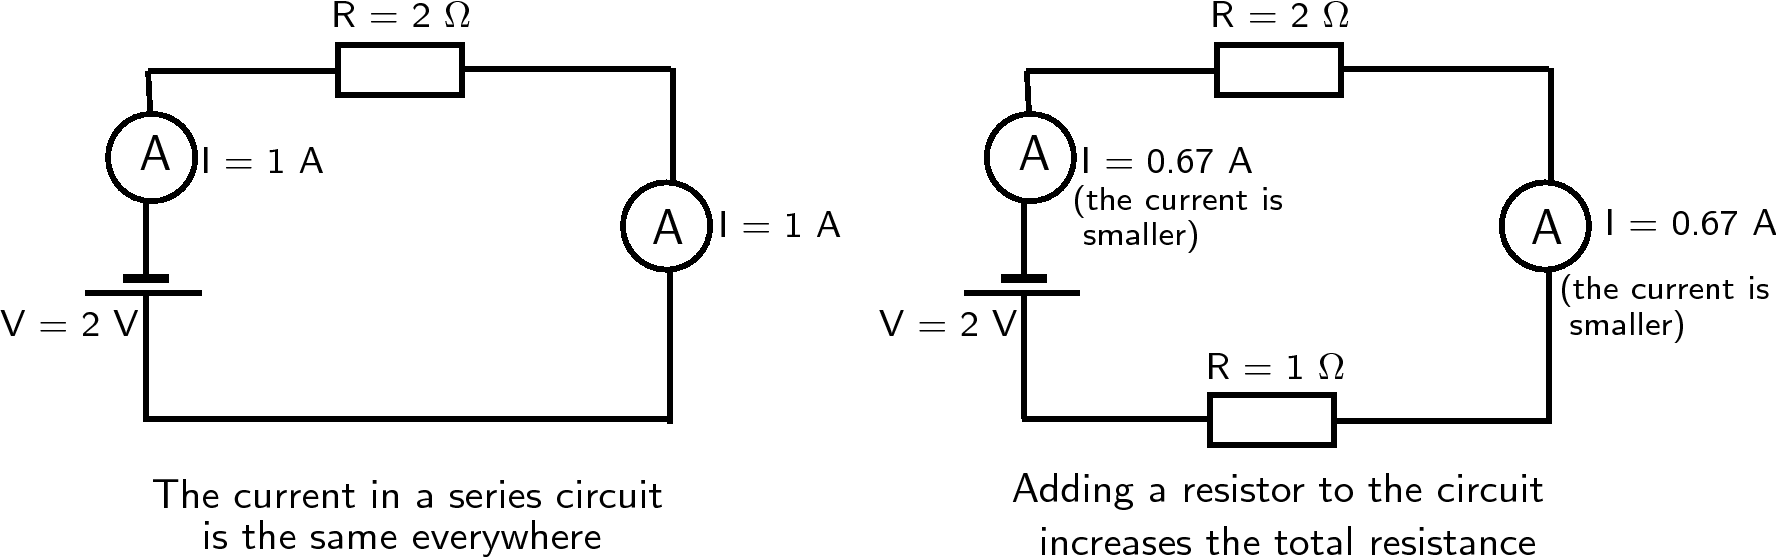 potential difference and resistance in simple electric circuits rh autonomia co what is the potential difference between the terminals of a cell in a circuit fixed what is potential difference in a series circuit